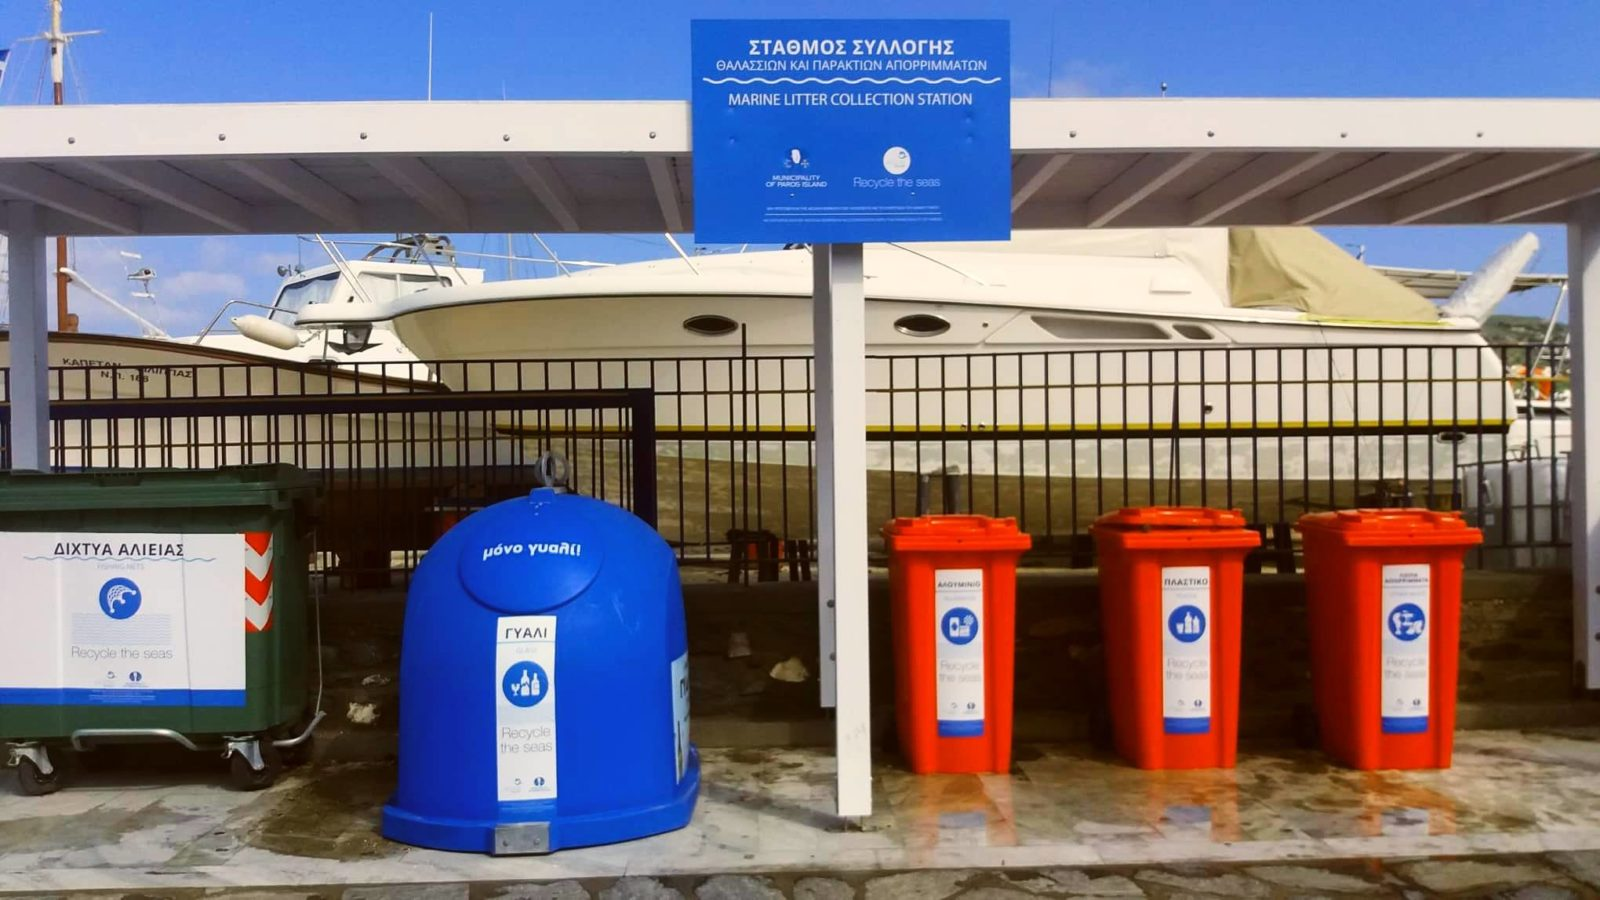 Aegean Rebreath Litter Collection Station Paros